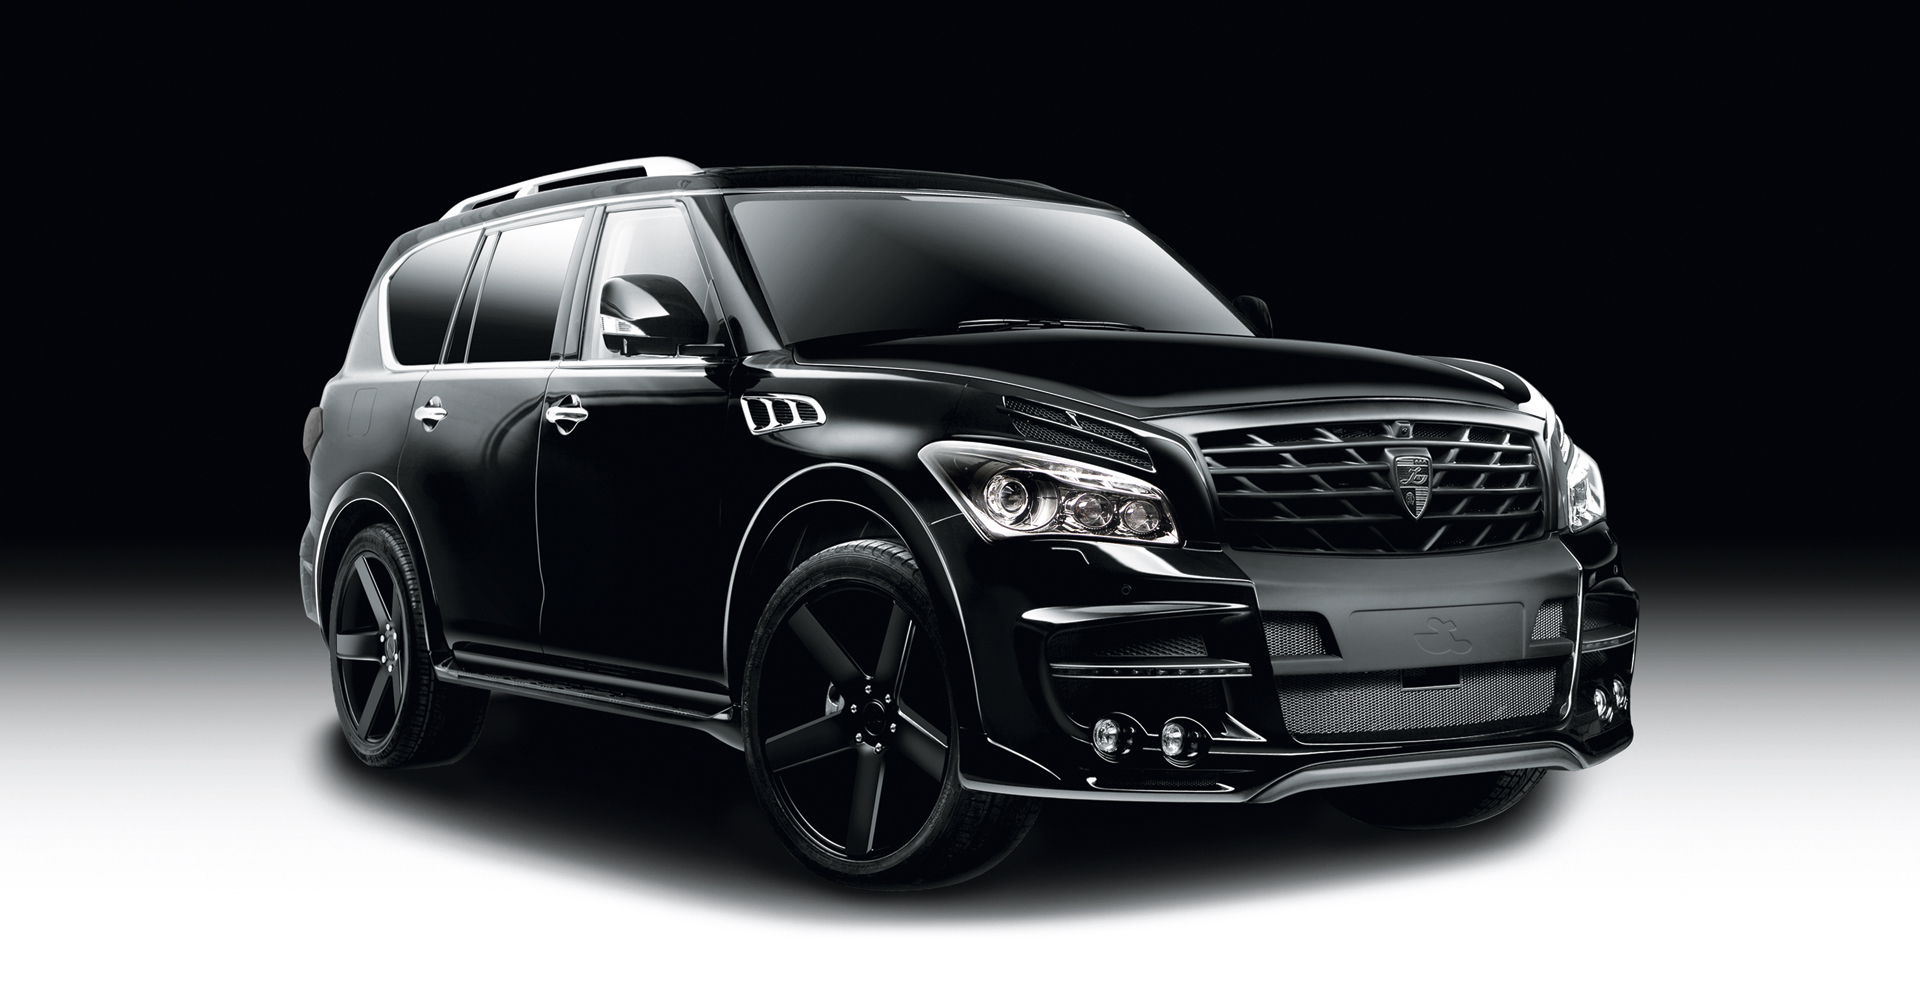 Black Qx70 >> Infiniti QX80 Gets the Larte Design Treatment - autoevolution